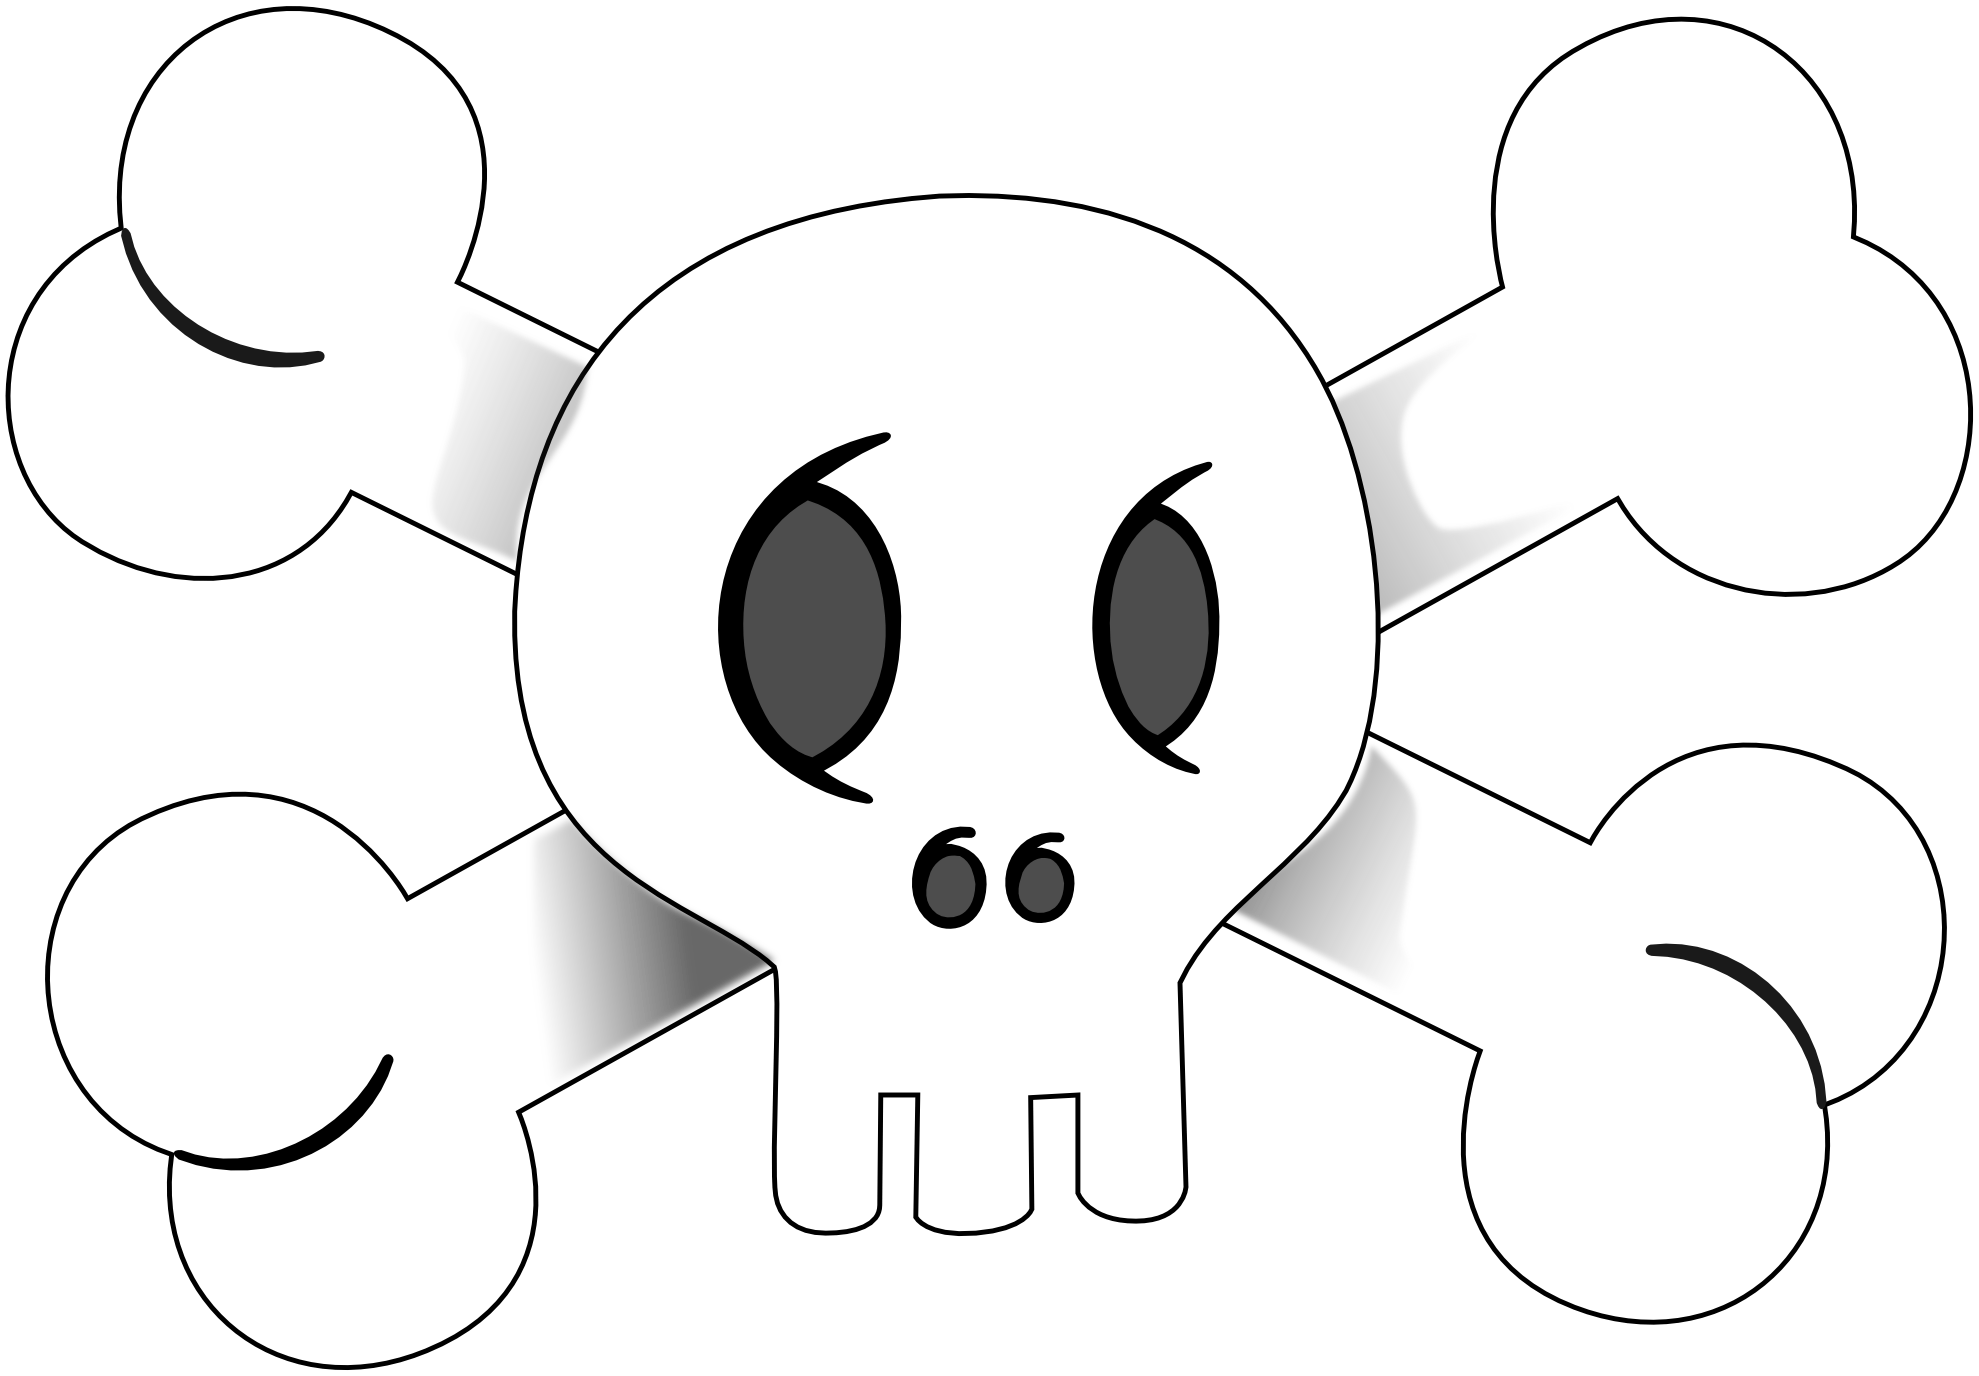 Free Pirate Flag Clipart Download Free Clip Art Free Clip Art On Clipart Library